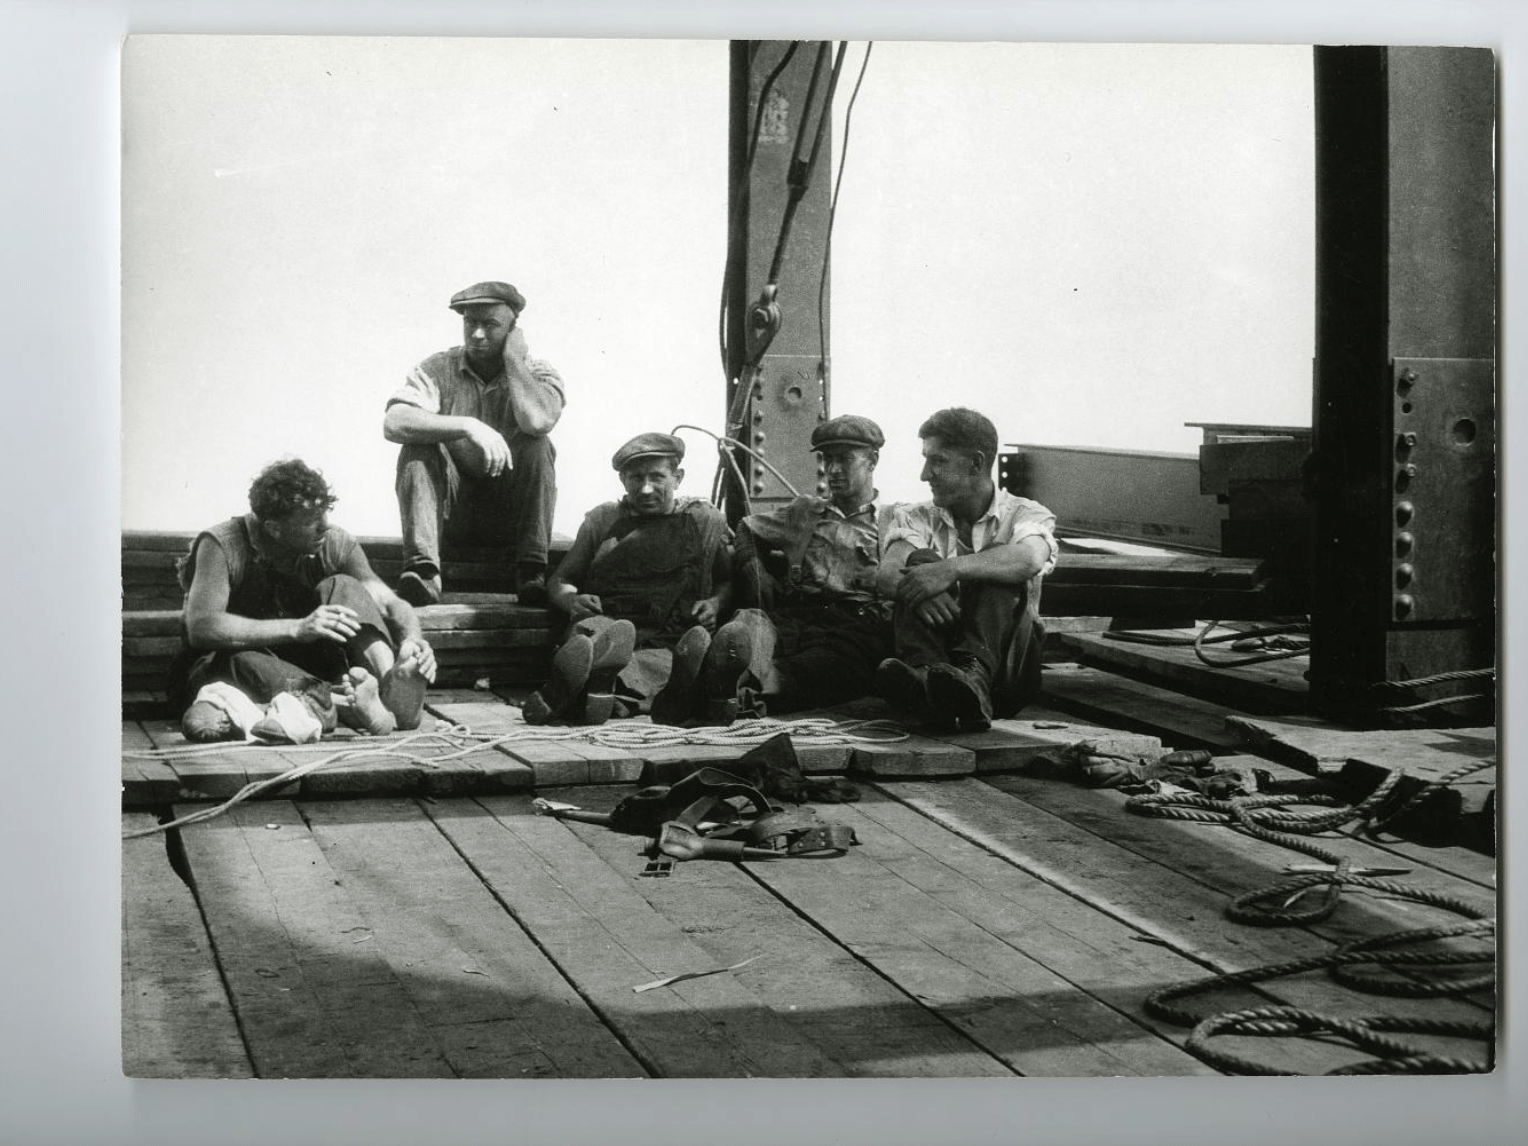 black and white photo of five Mohawk ironworkers in caps and overalls sitting down on a costruction site